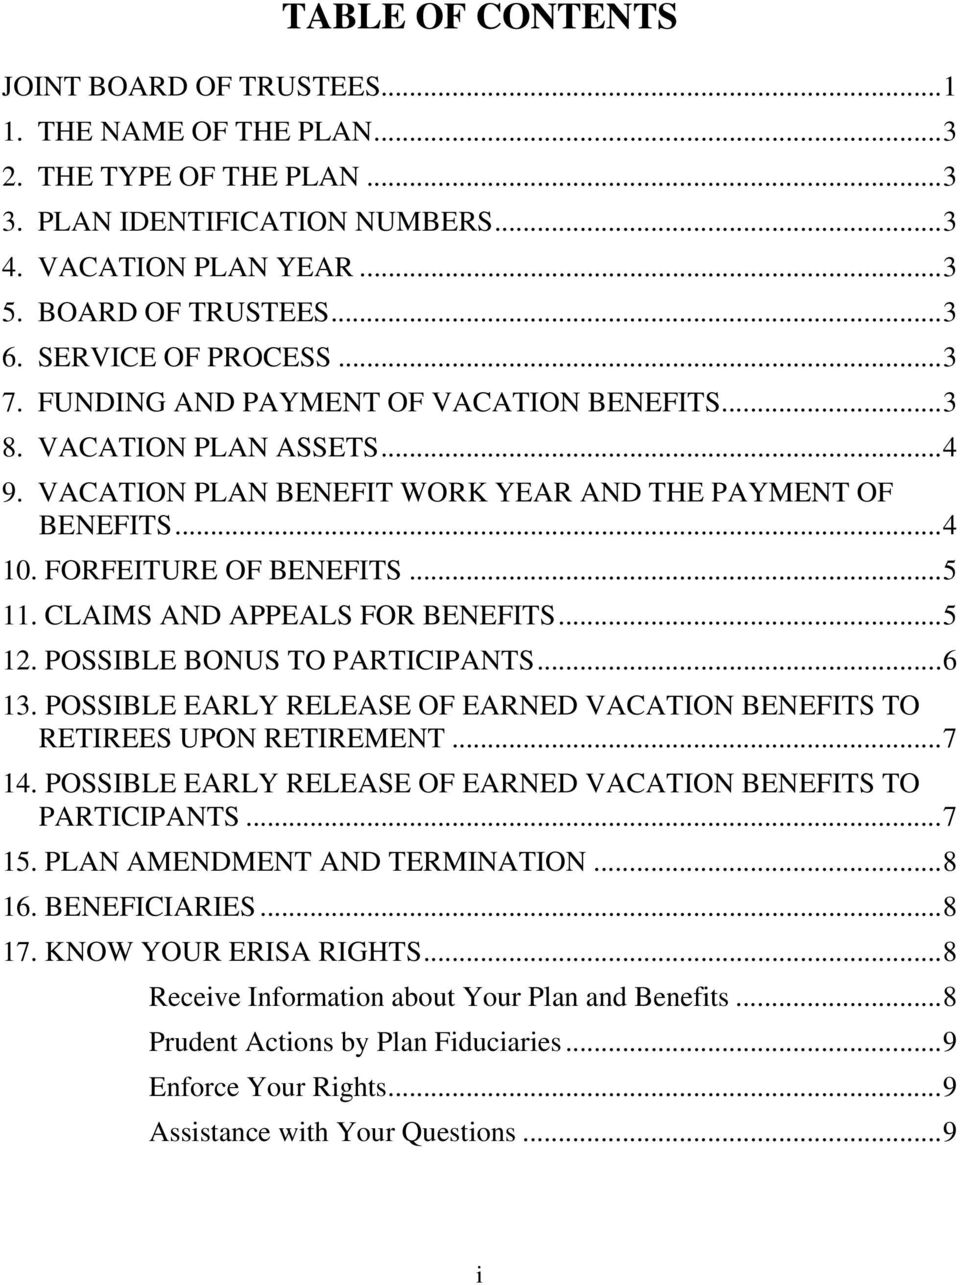 .. 5 11. CLAIMS AND APPEALS FOR BENEFITS... 5 12. POSSIBLE BONUS TO PARTICIPANTS... 6 13. POSSIBLE EARLY RELEASE OF EARNED VACATION BENEFITS TO RETIREES UPON RETIREMENT... 7 14.